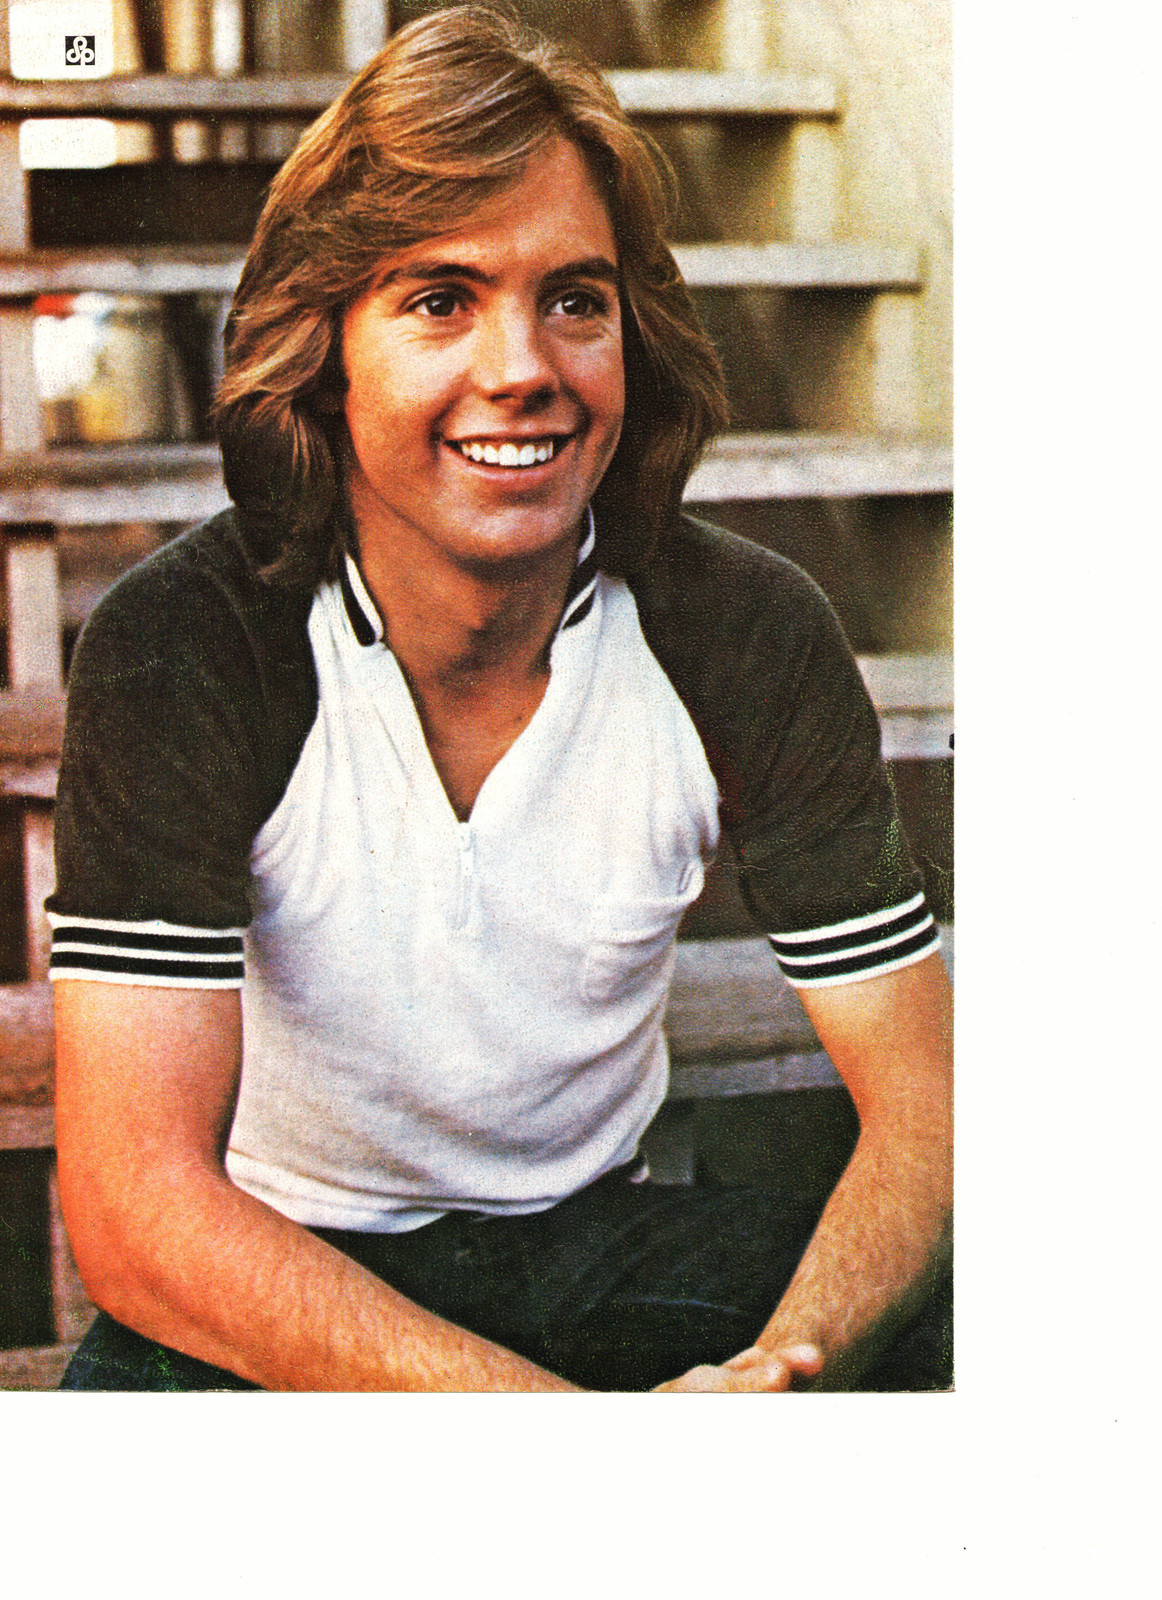 Shaun Cassidy teen magazine pinup clipping on the stairs 1970's Vintage Young